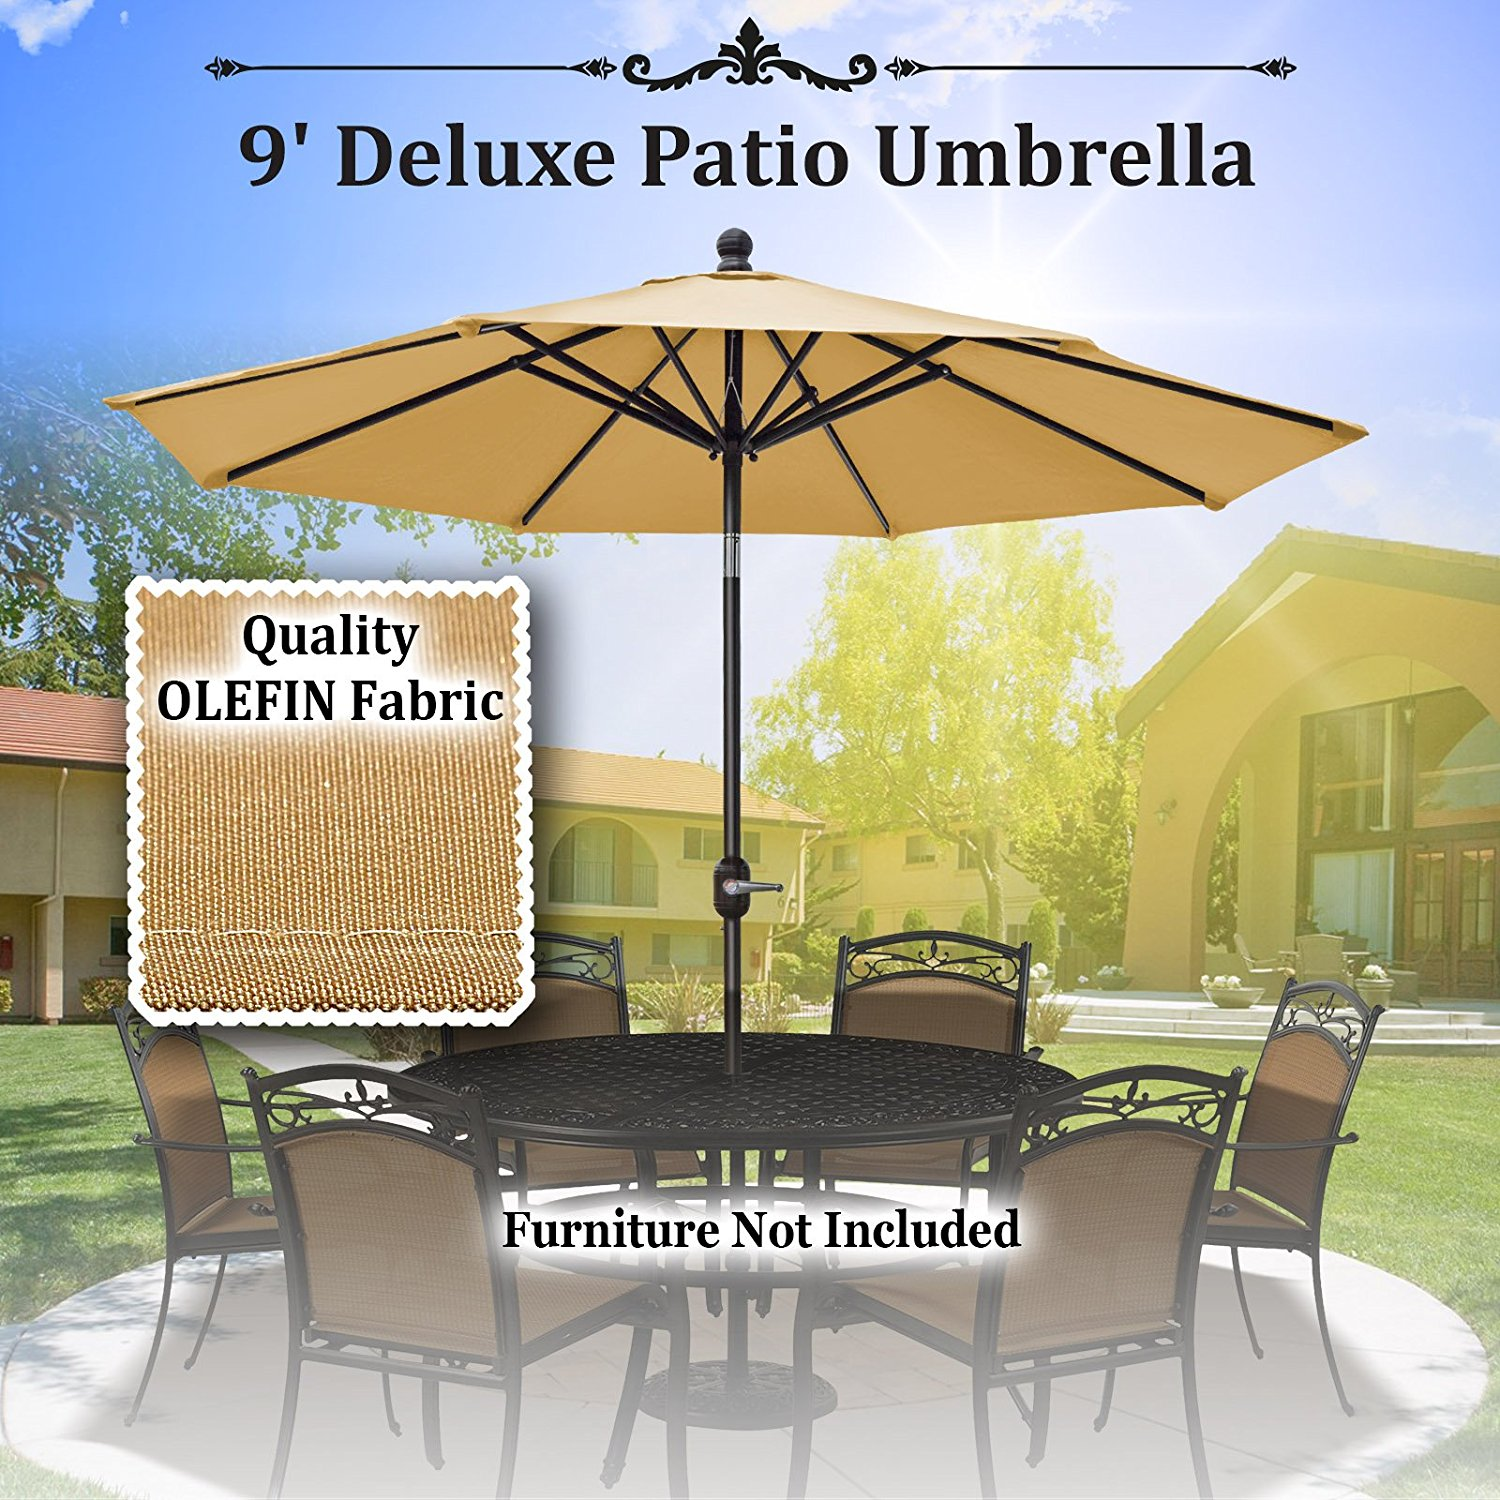 Sunrise 9' Outdoor Table 8 Aluminum Ribs, Patio Umbrella with Auto Tilt and Crank (Beige)